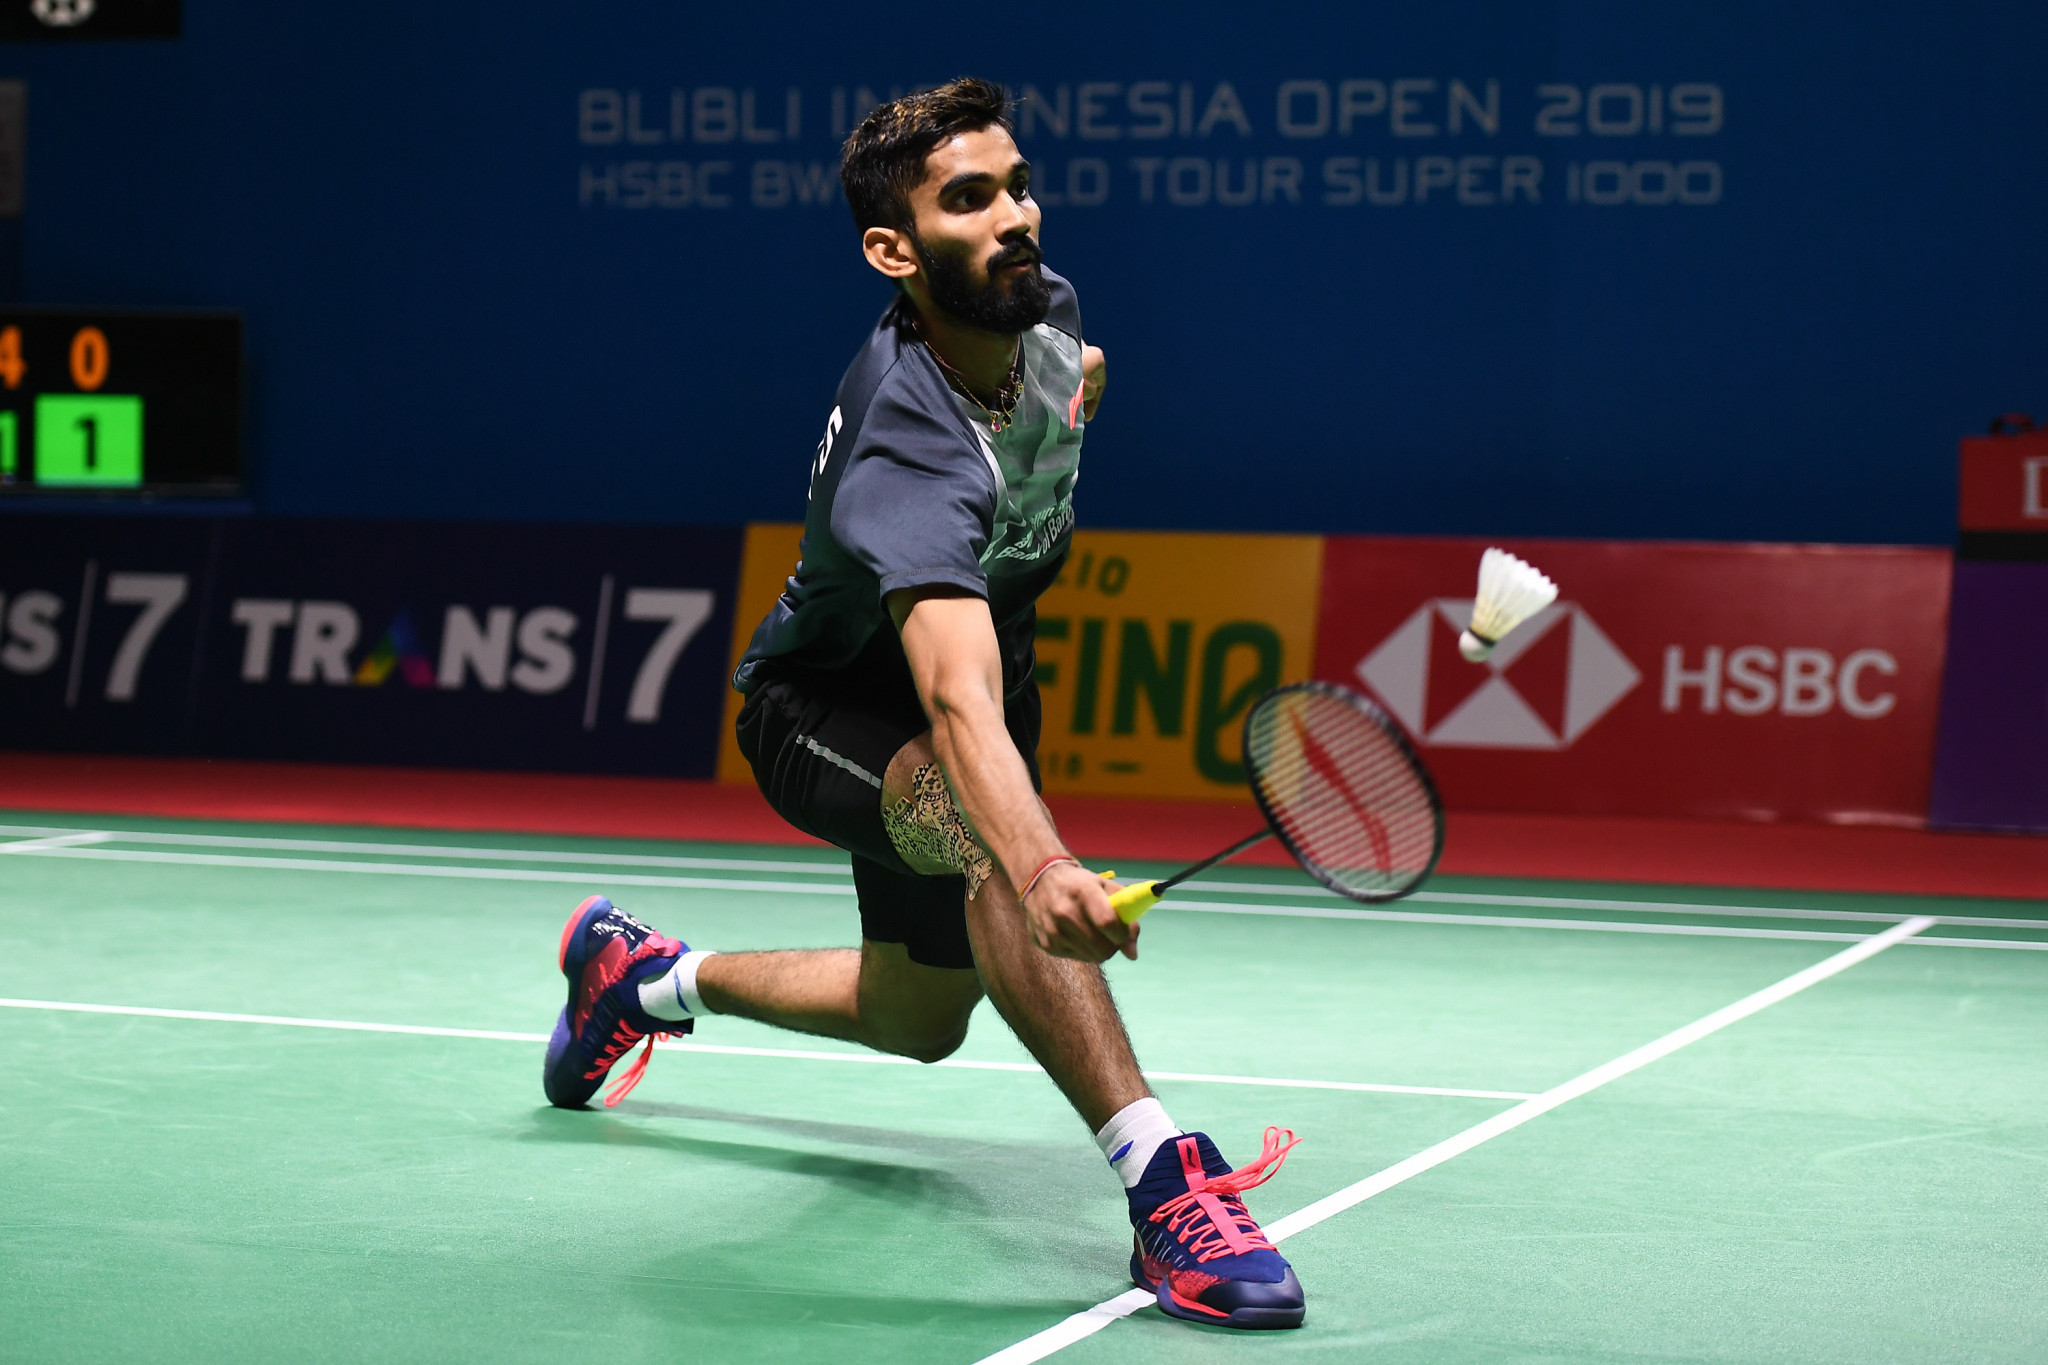 Home favourite Kidambdi knocked out of Syed Modi International Badminton Championships